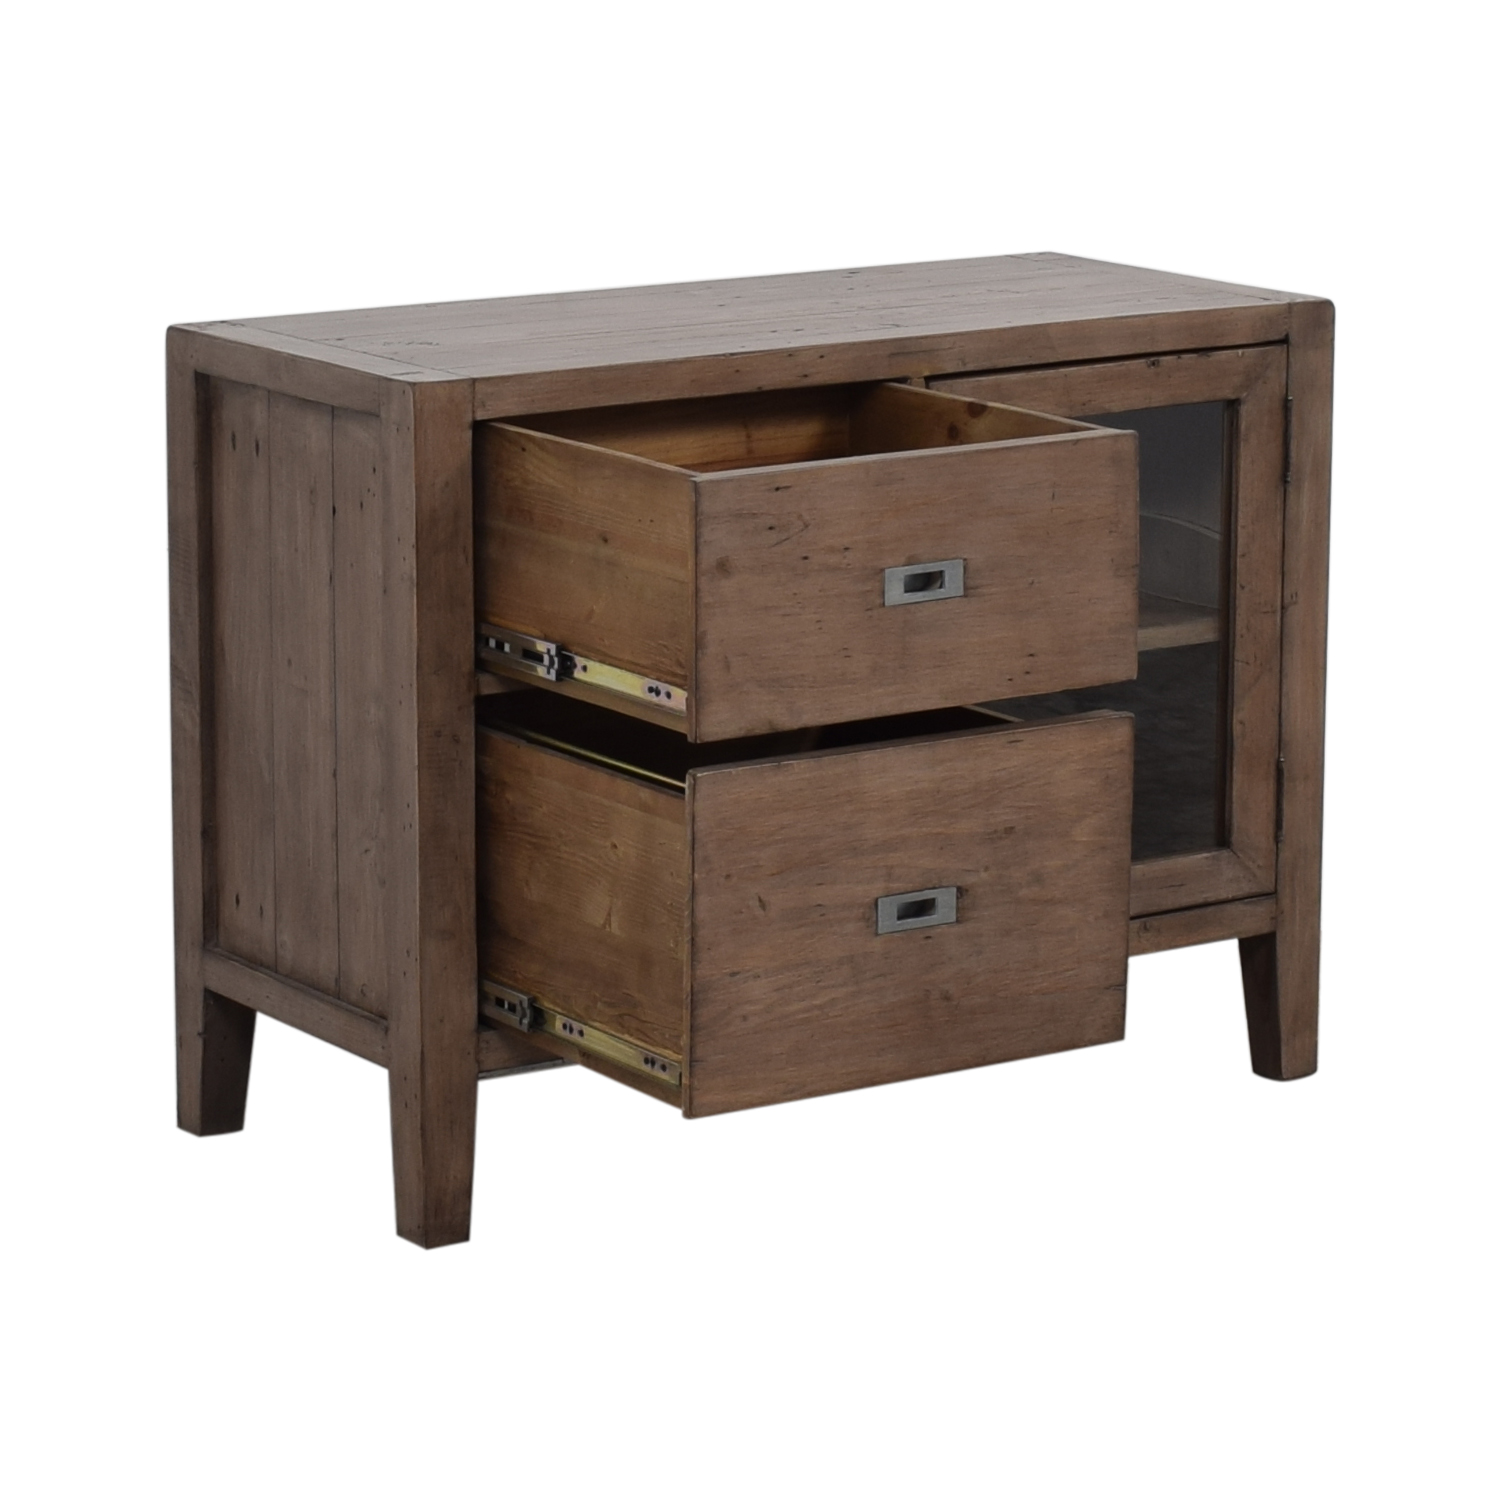 Crate Barrel Morris Credenza Cabinets Sideboards